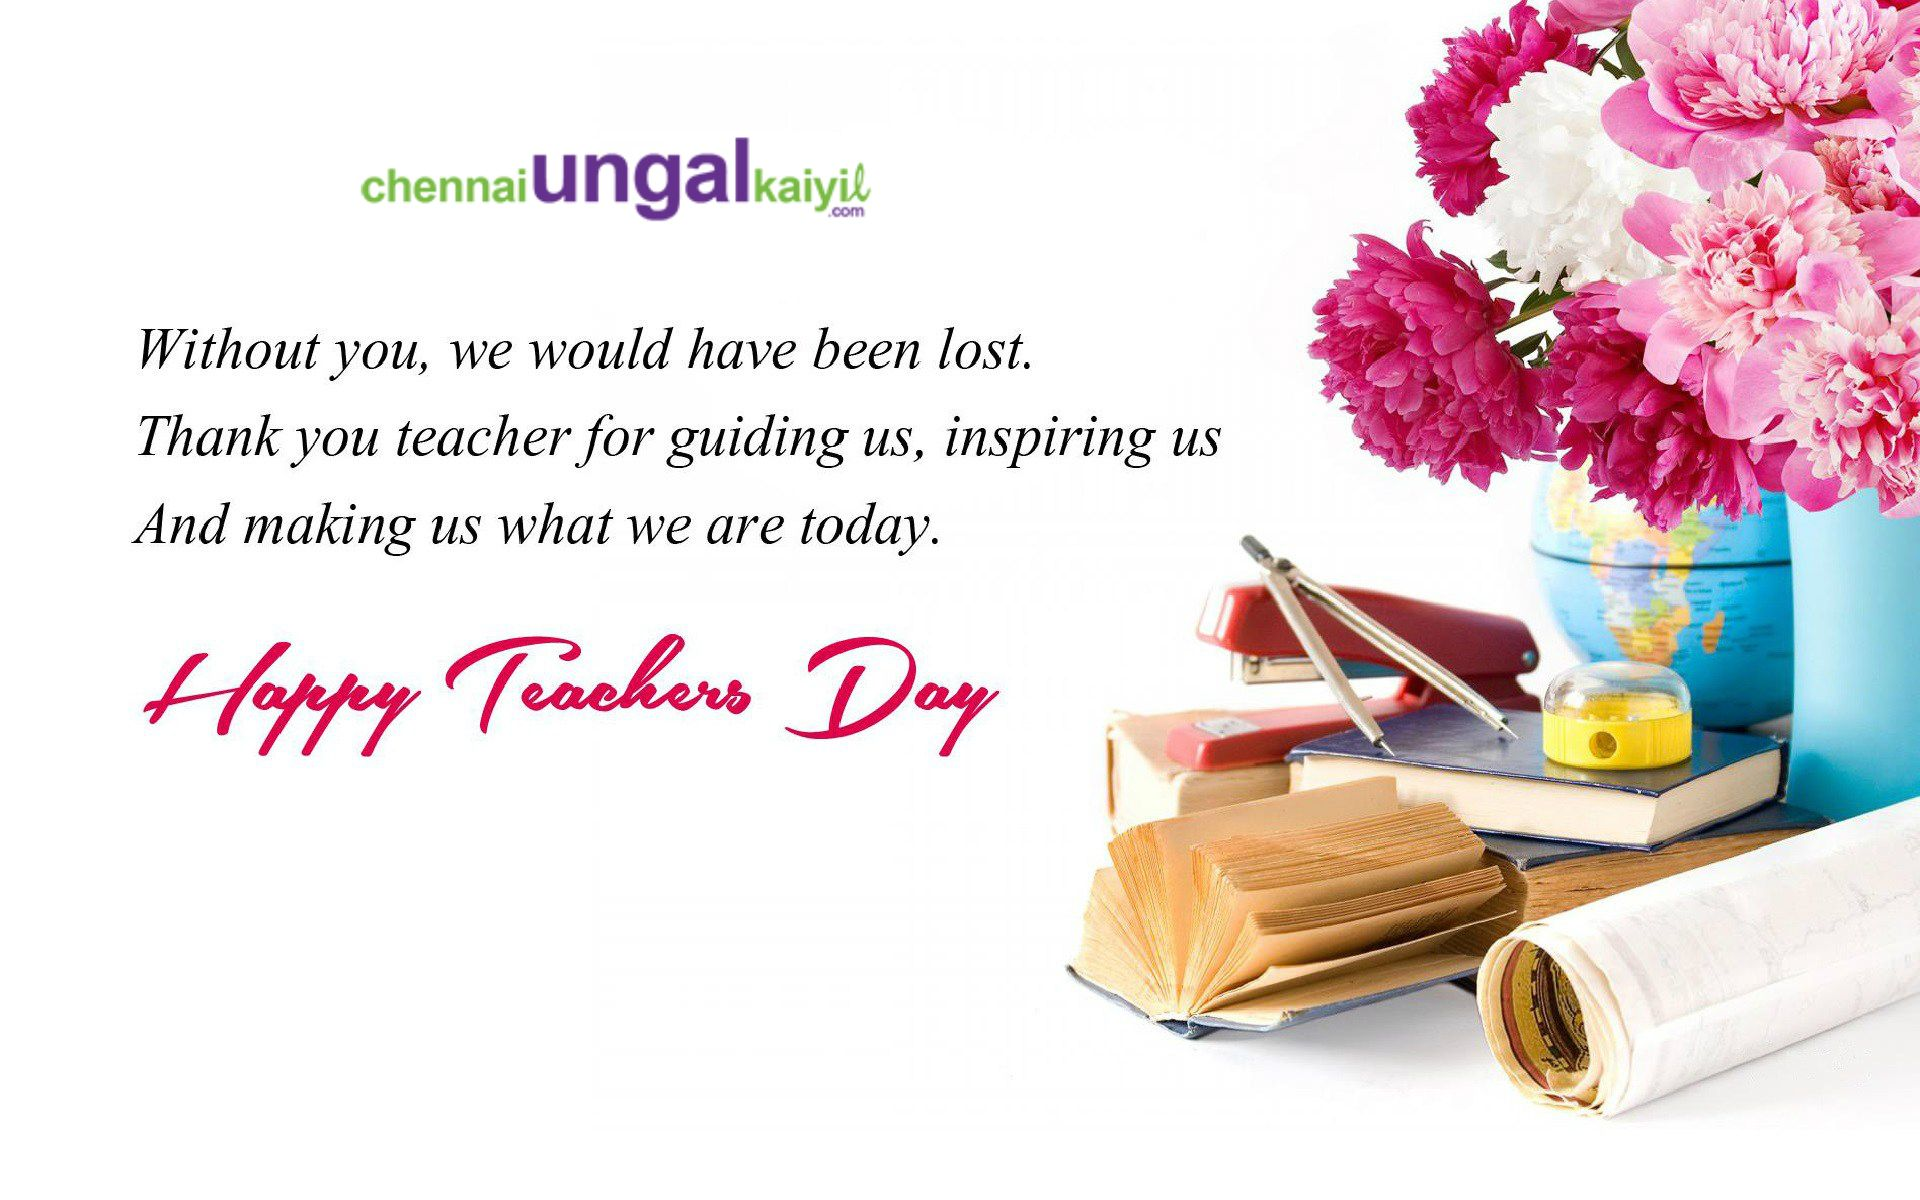 Without You We Would Have Been Lost Thank You Teacher For Guiding Us Inspiring Us And Makin Teachers Day Wishes Happy Teachers Day Happy Teachers Day Wishes